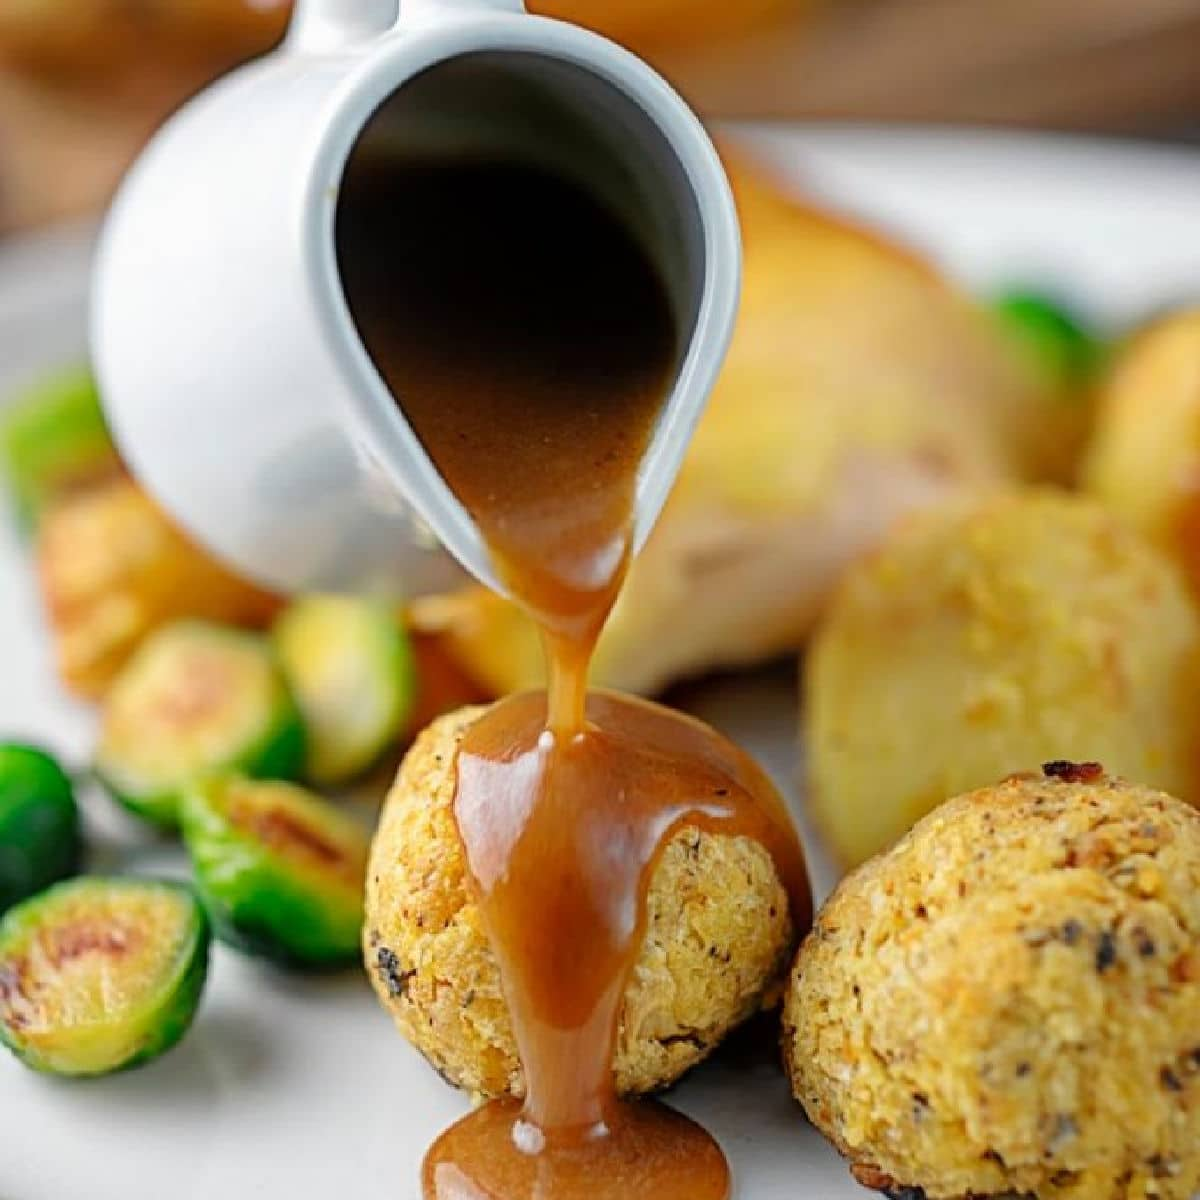 gravy being poured onto a stuffing ball